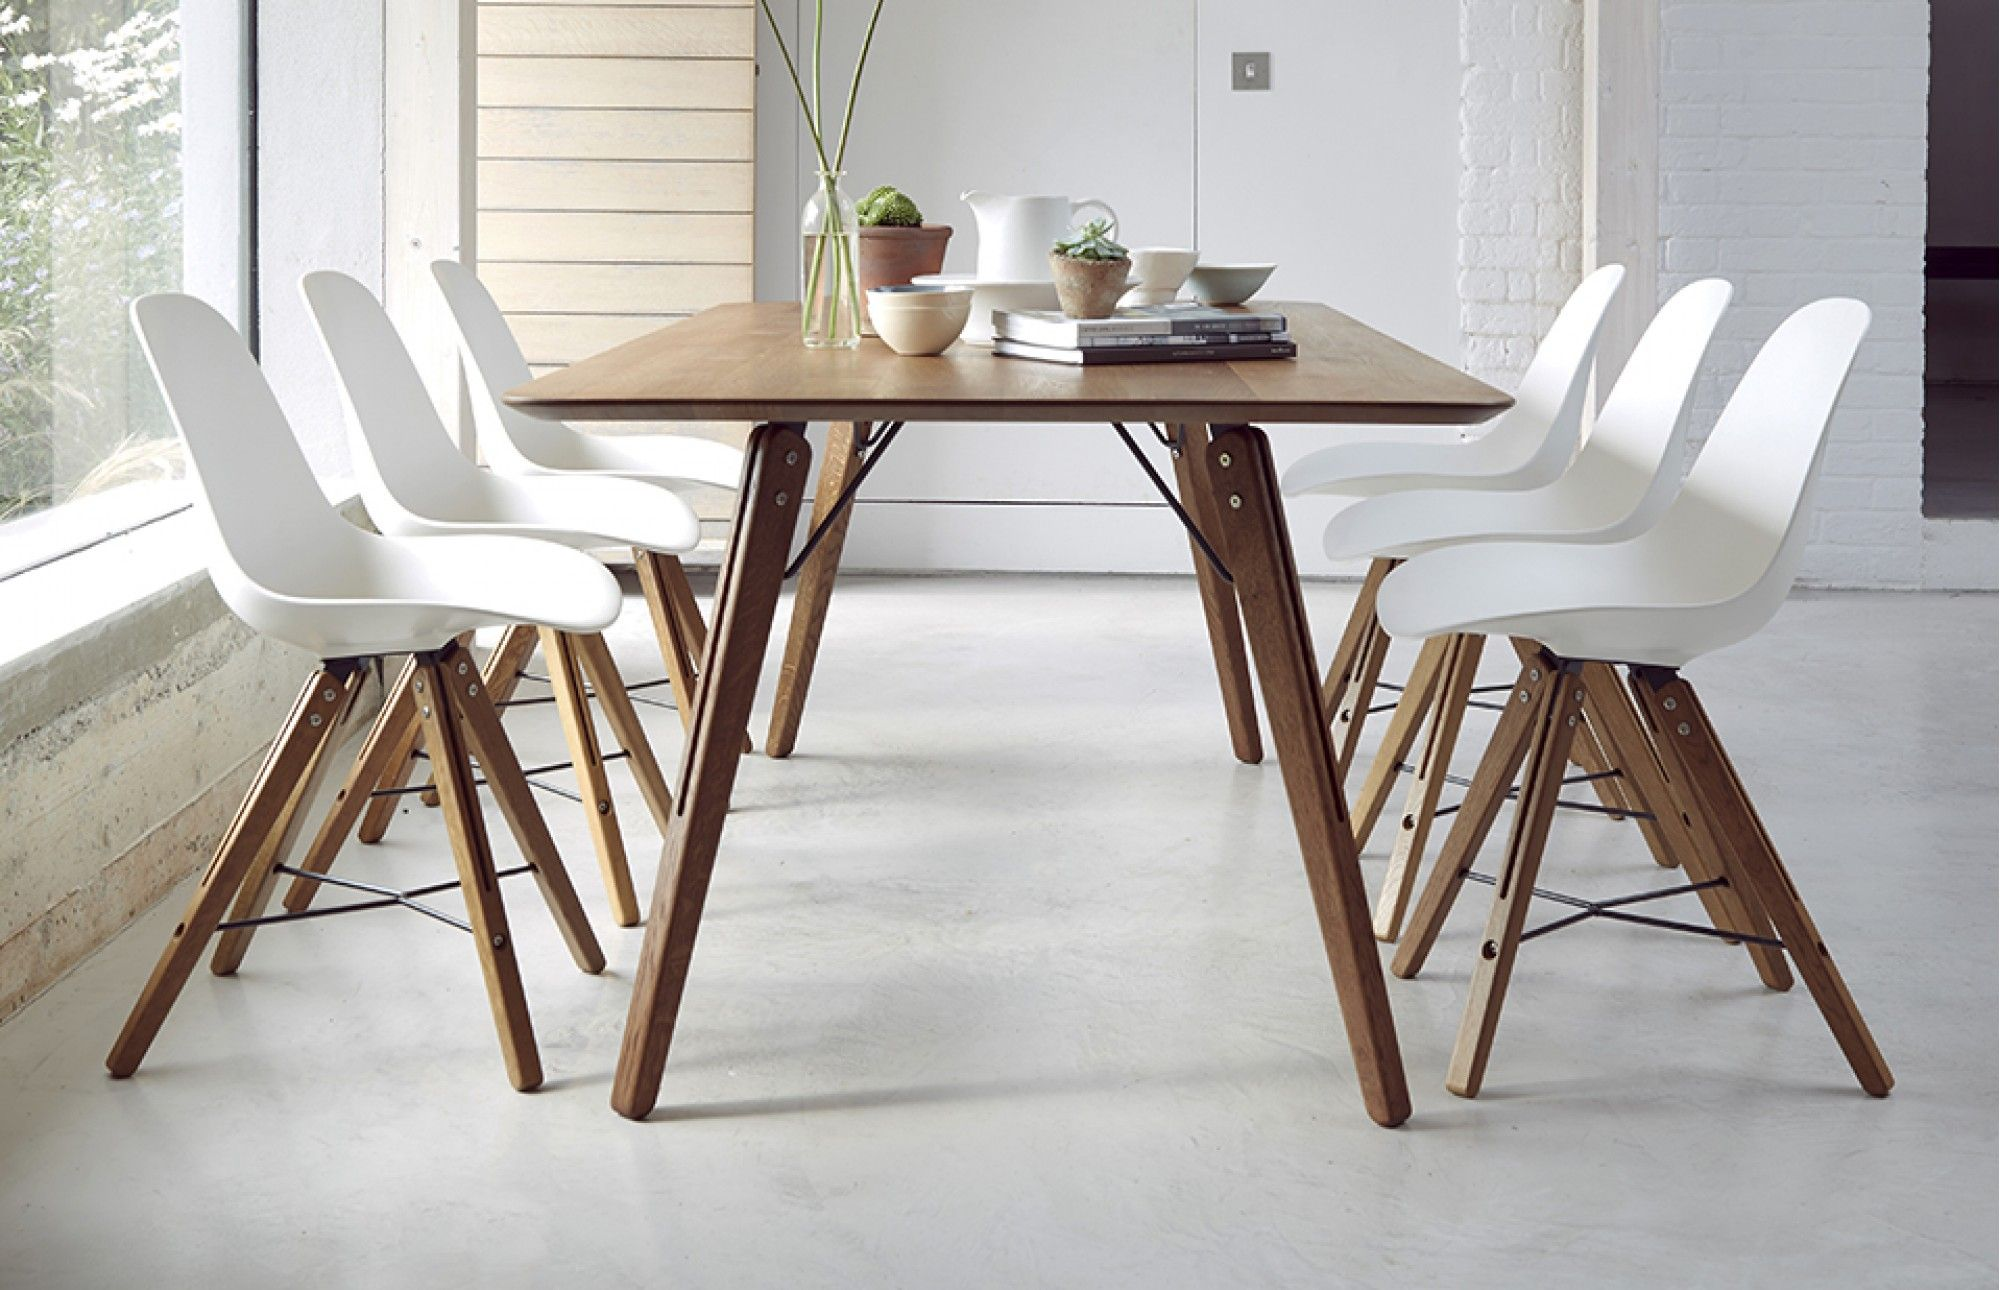 Essence Solid Elm Rectangular Dining Table With Copper Cap Legs - Modern 6 seater dining table and chairs